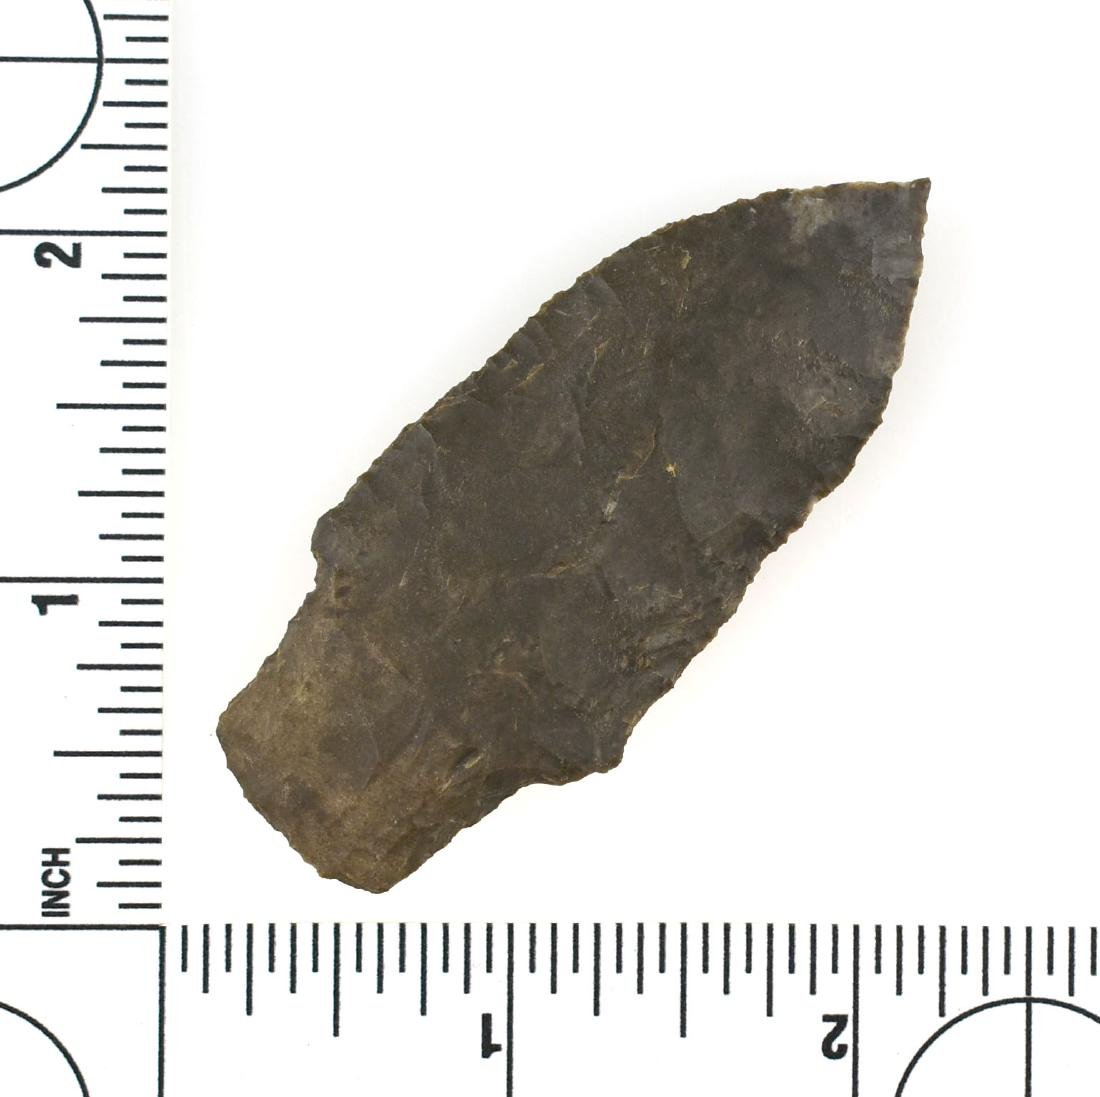 "Needle Tipped 2 5/8"" Tennessee Arrowhead - 2"